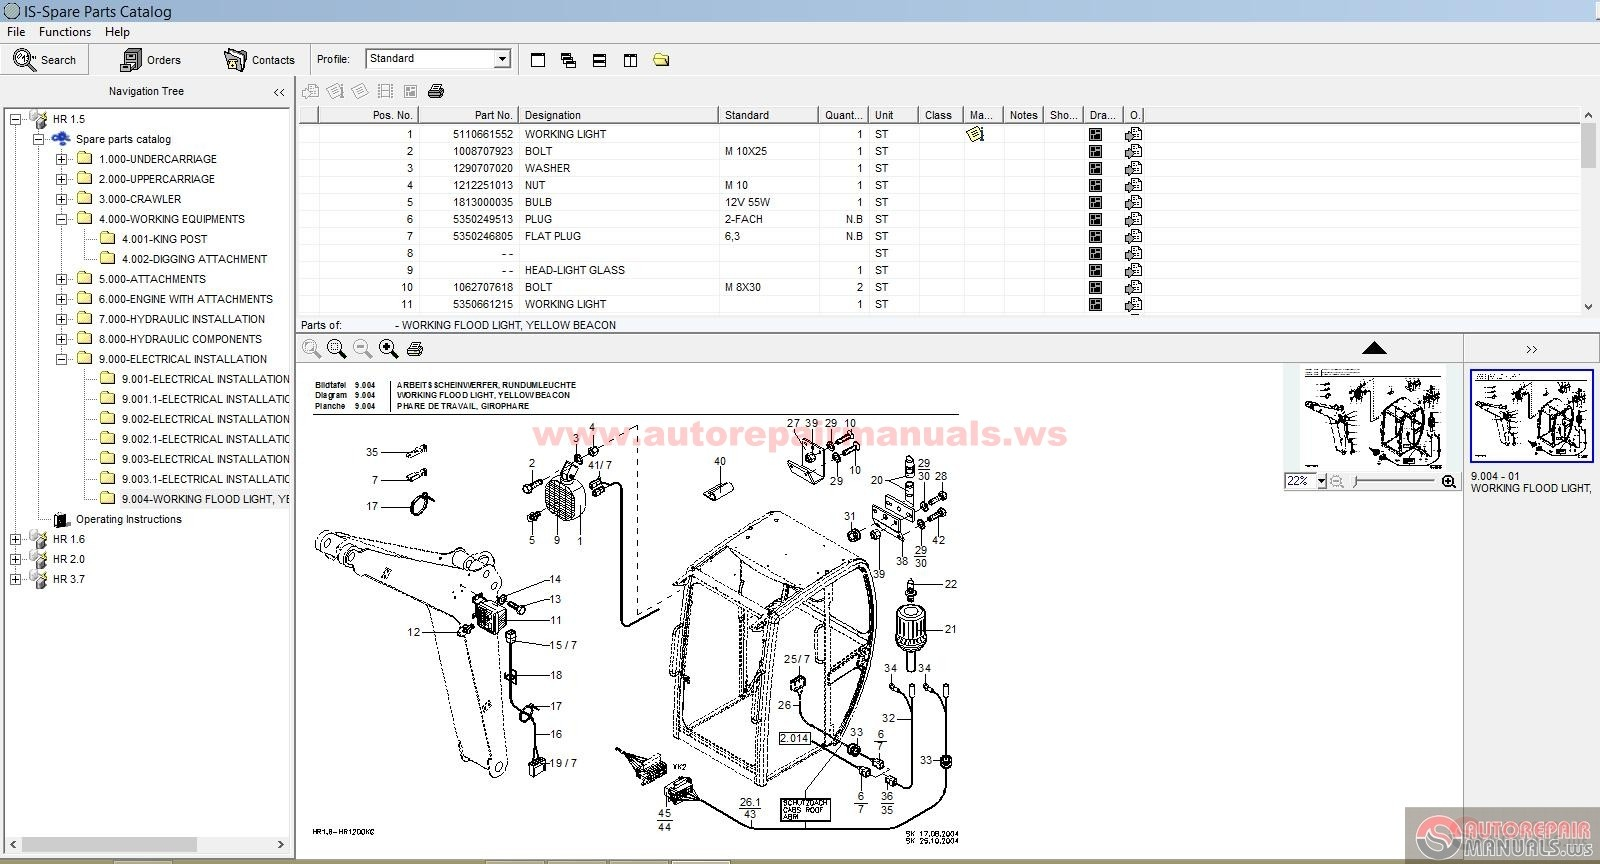 Auto Crane Wire Schematics Data Schema Terex Cranes Wiring Diagram Circuit Maker Basic Parts Of A Boom